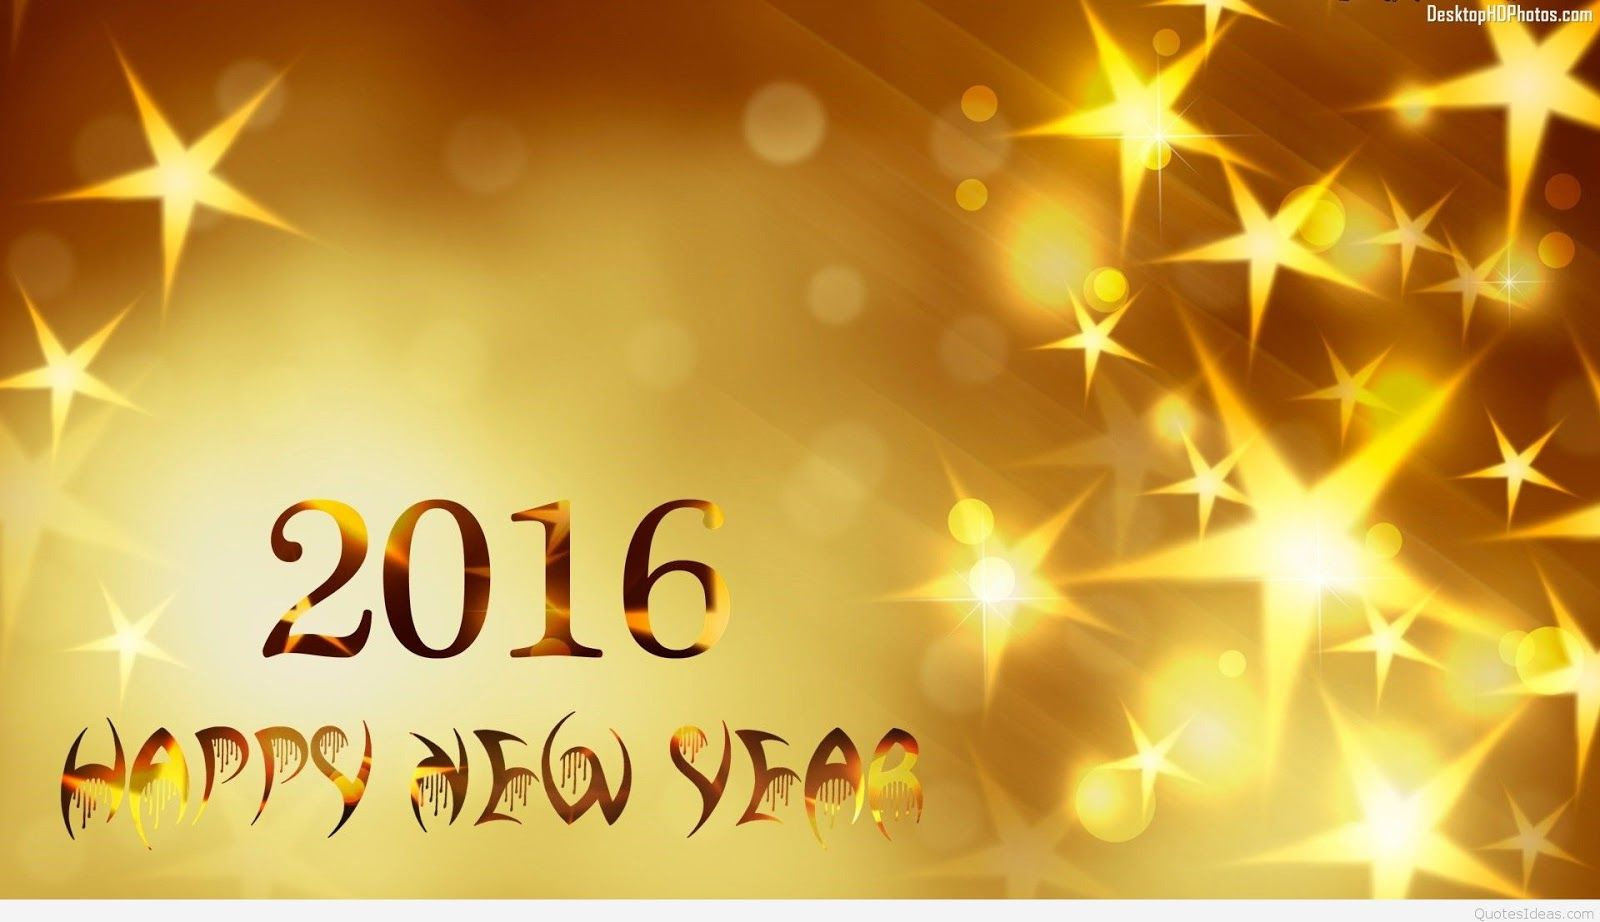 2016 Happy New Years Wallpaper Pictures, Photos, and Images for ...